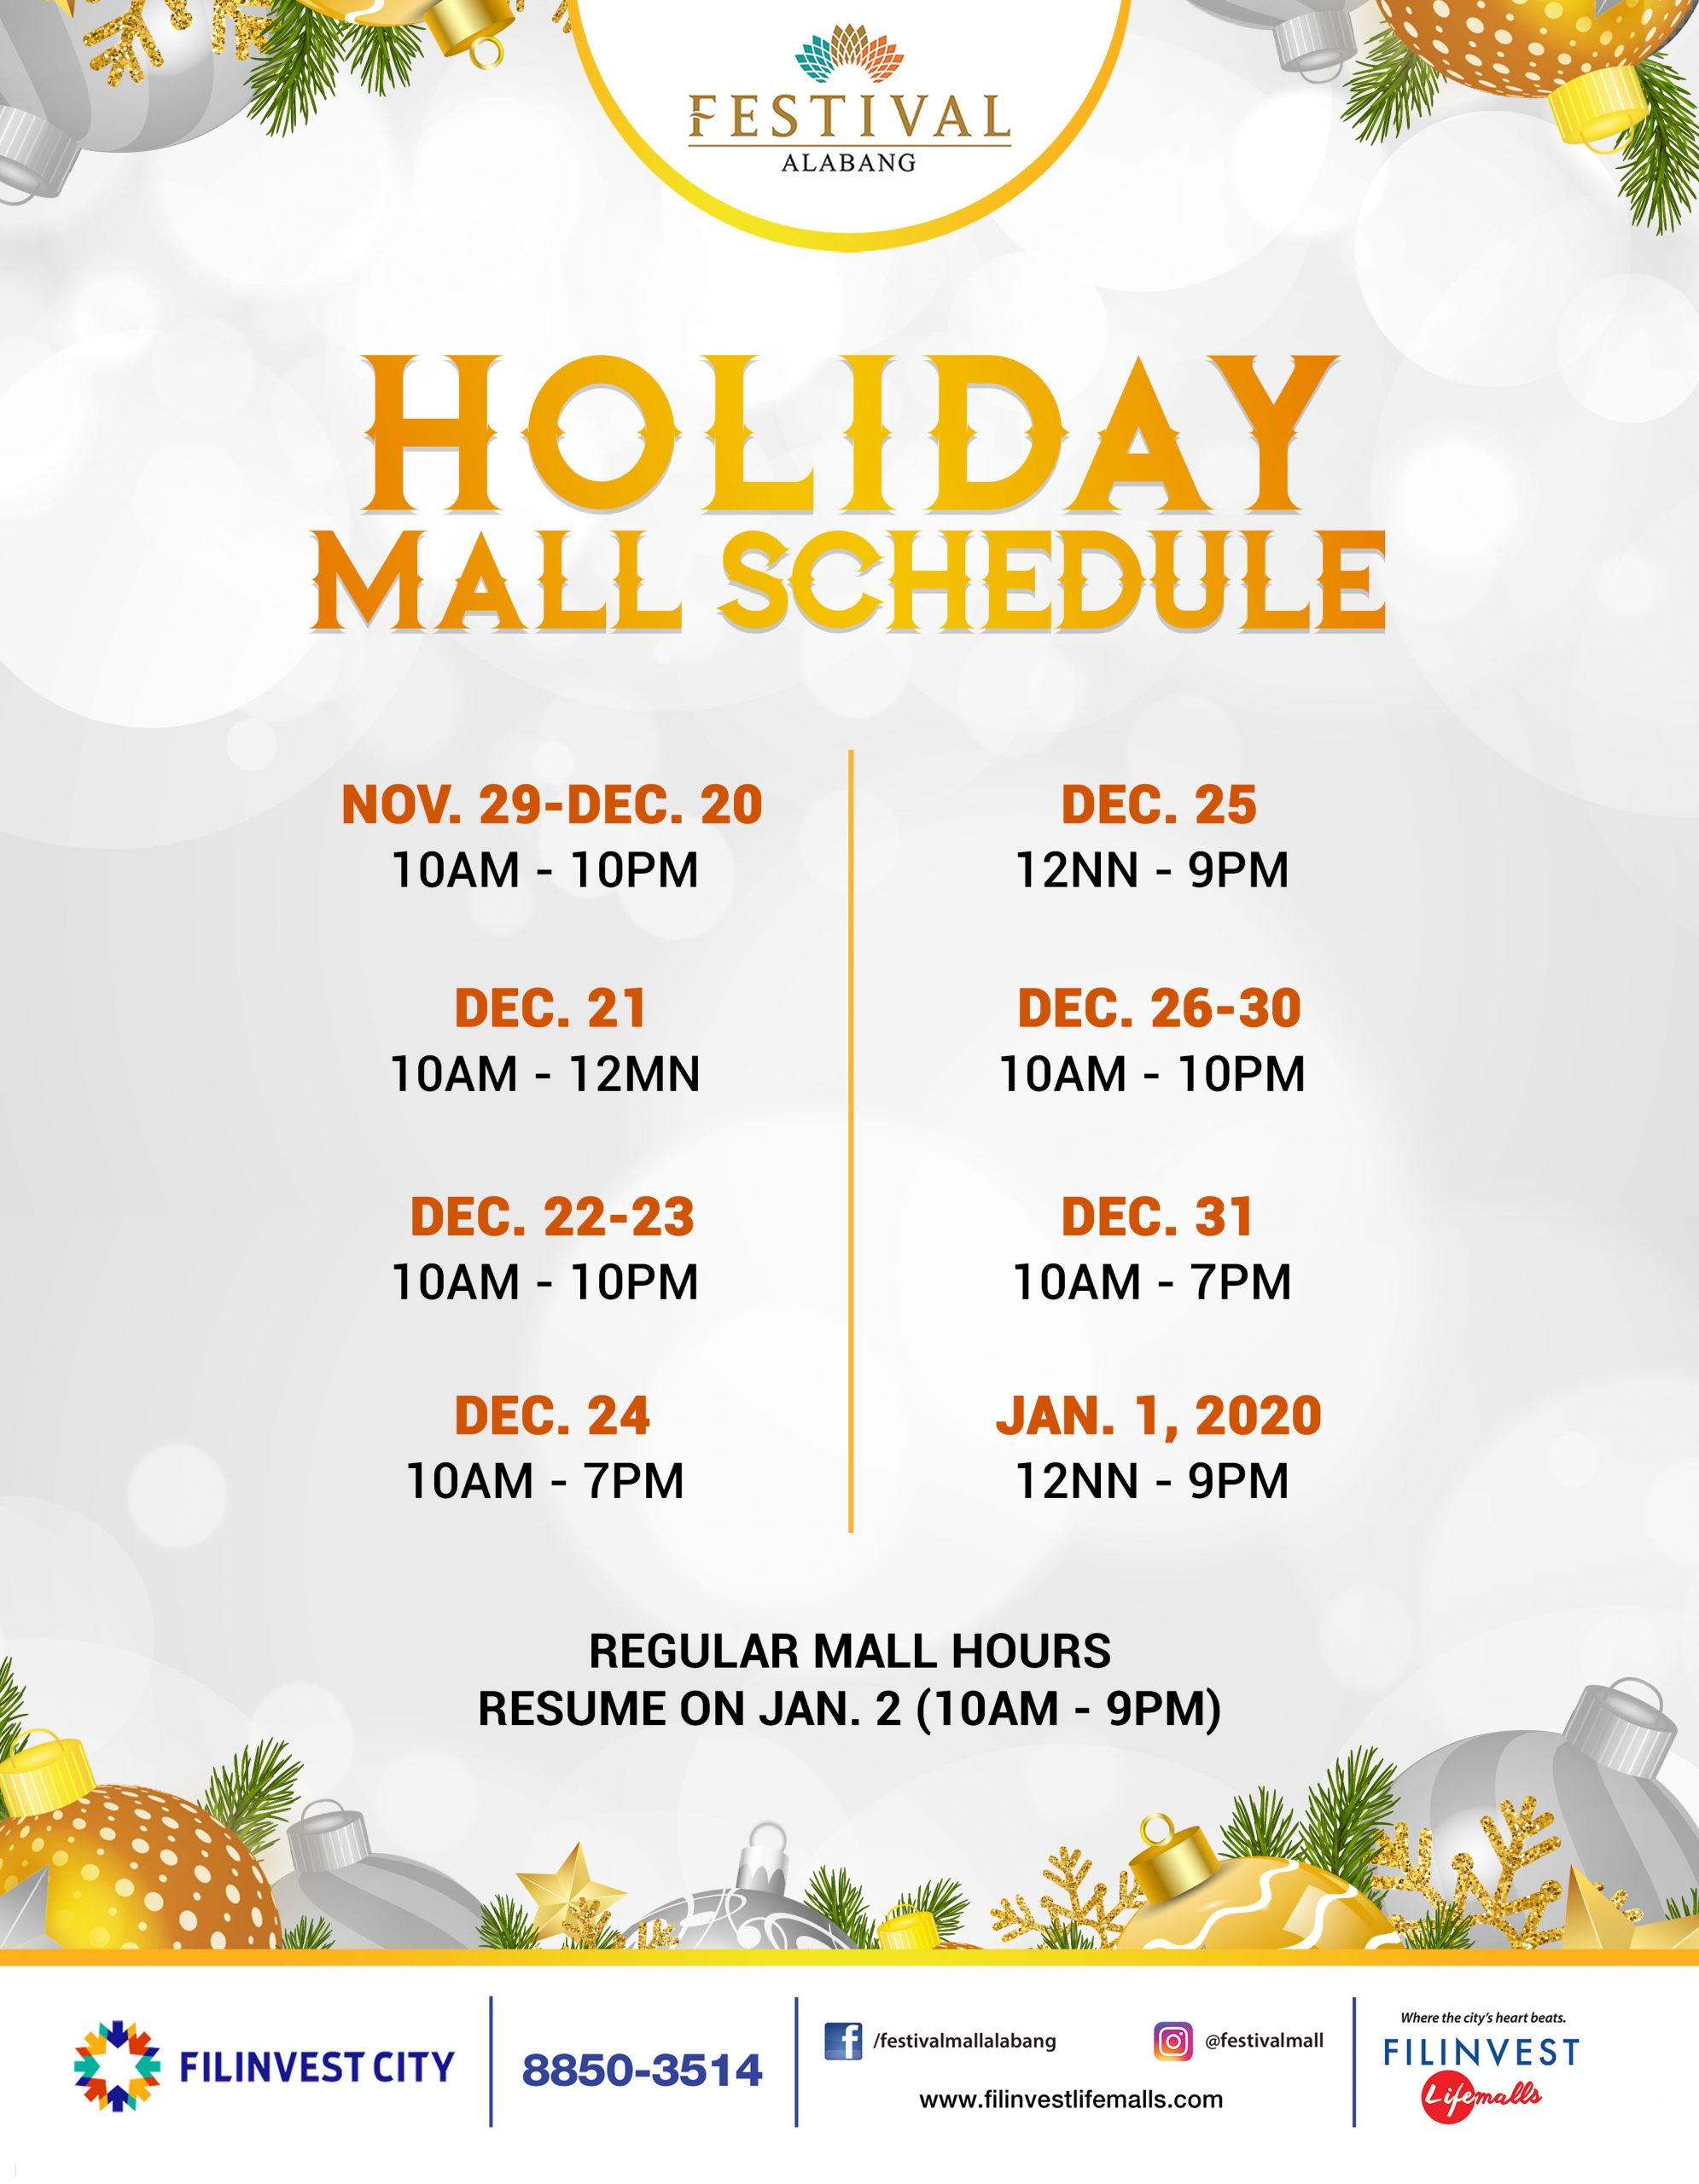 Festival Mall's Holiday Mall Schedule